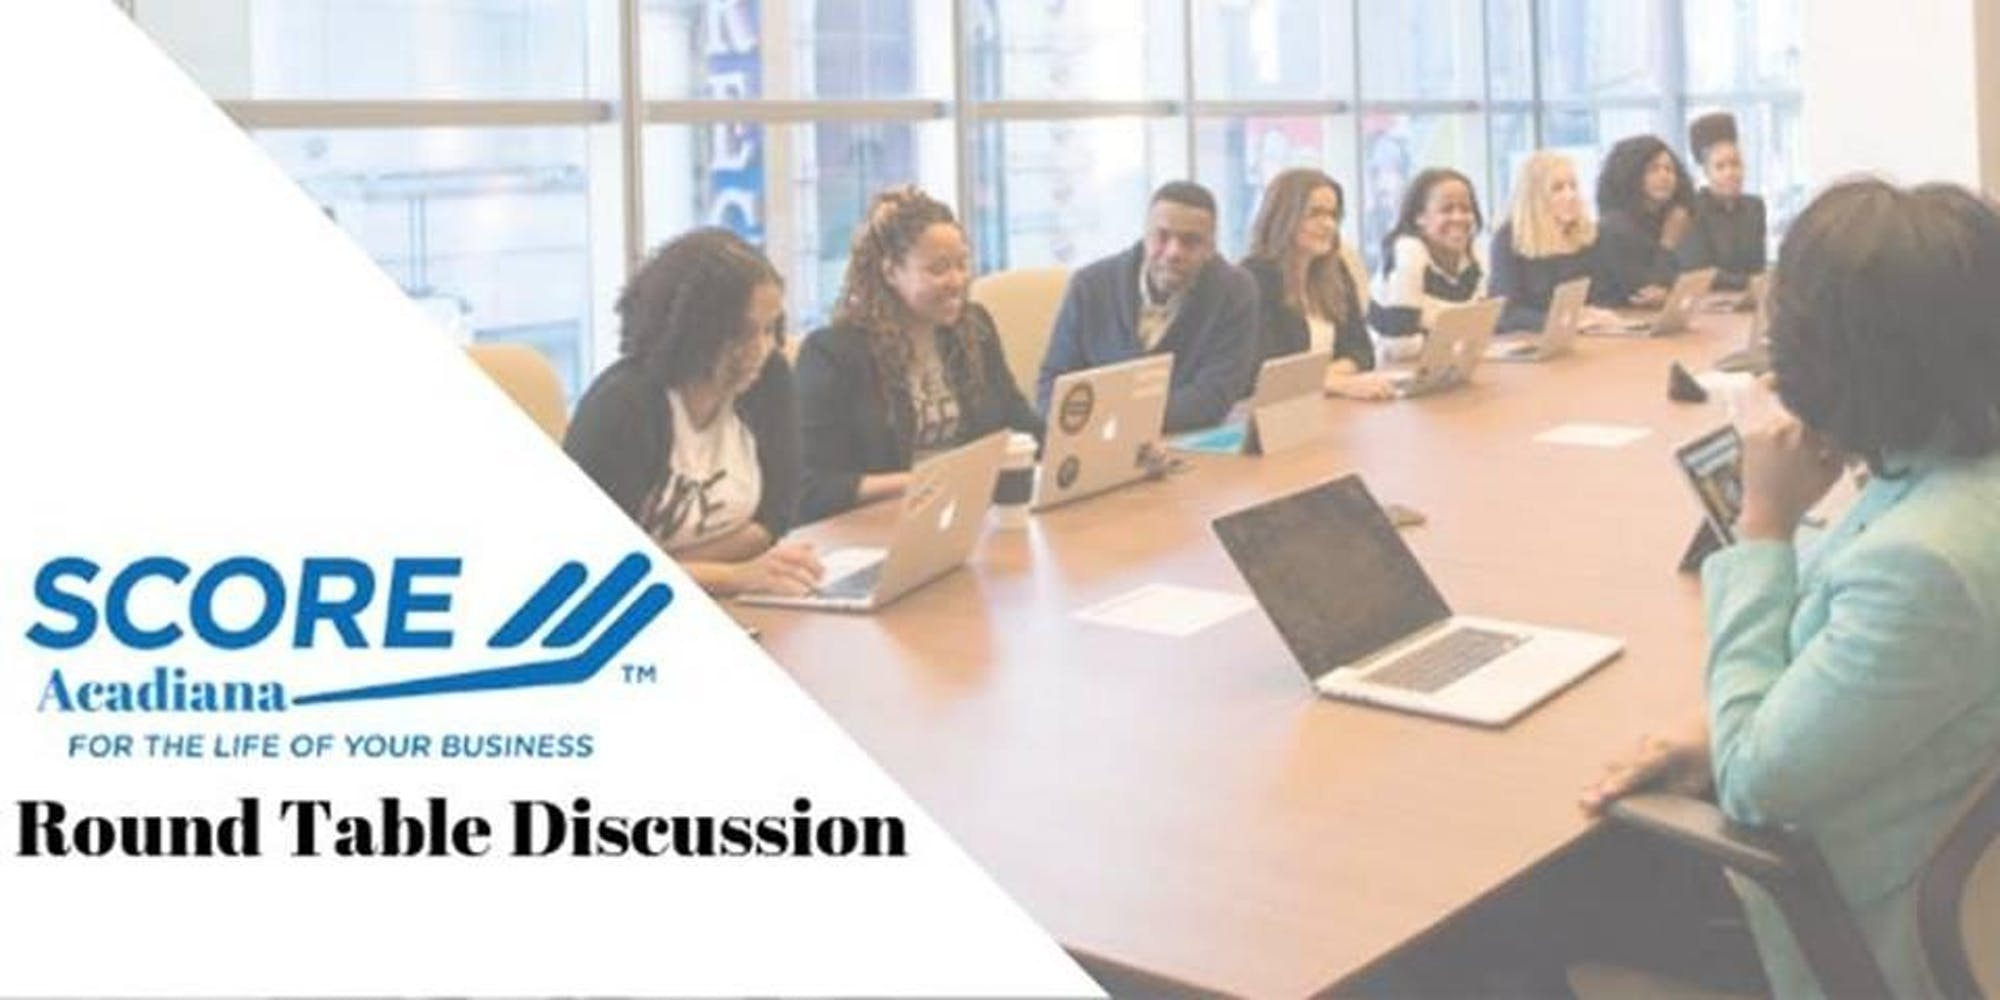 SCORE Round Table Discussion